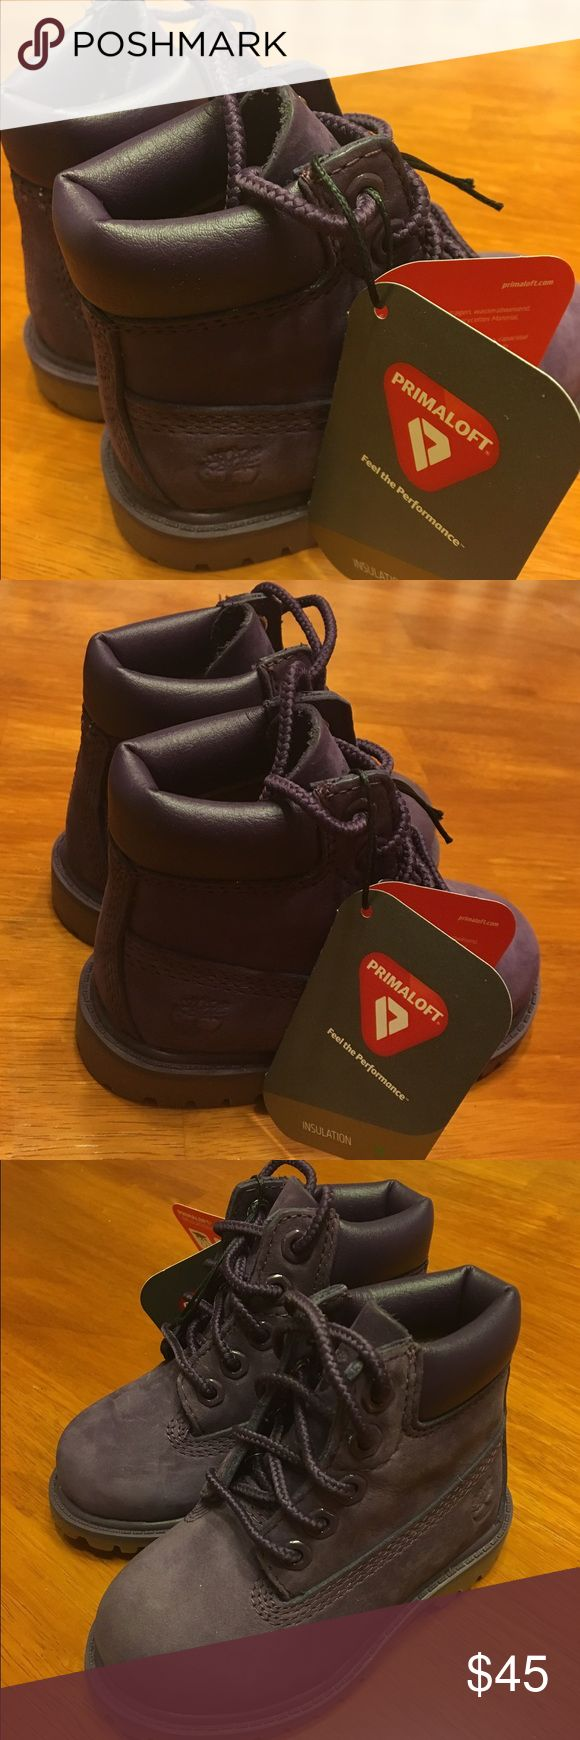 NWT- toddler size 5 purple timberland boots New with tags- never worn- purple Timberland boots- toddler size 5 Timberland Shoes Boots